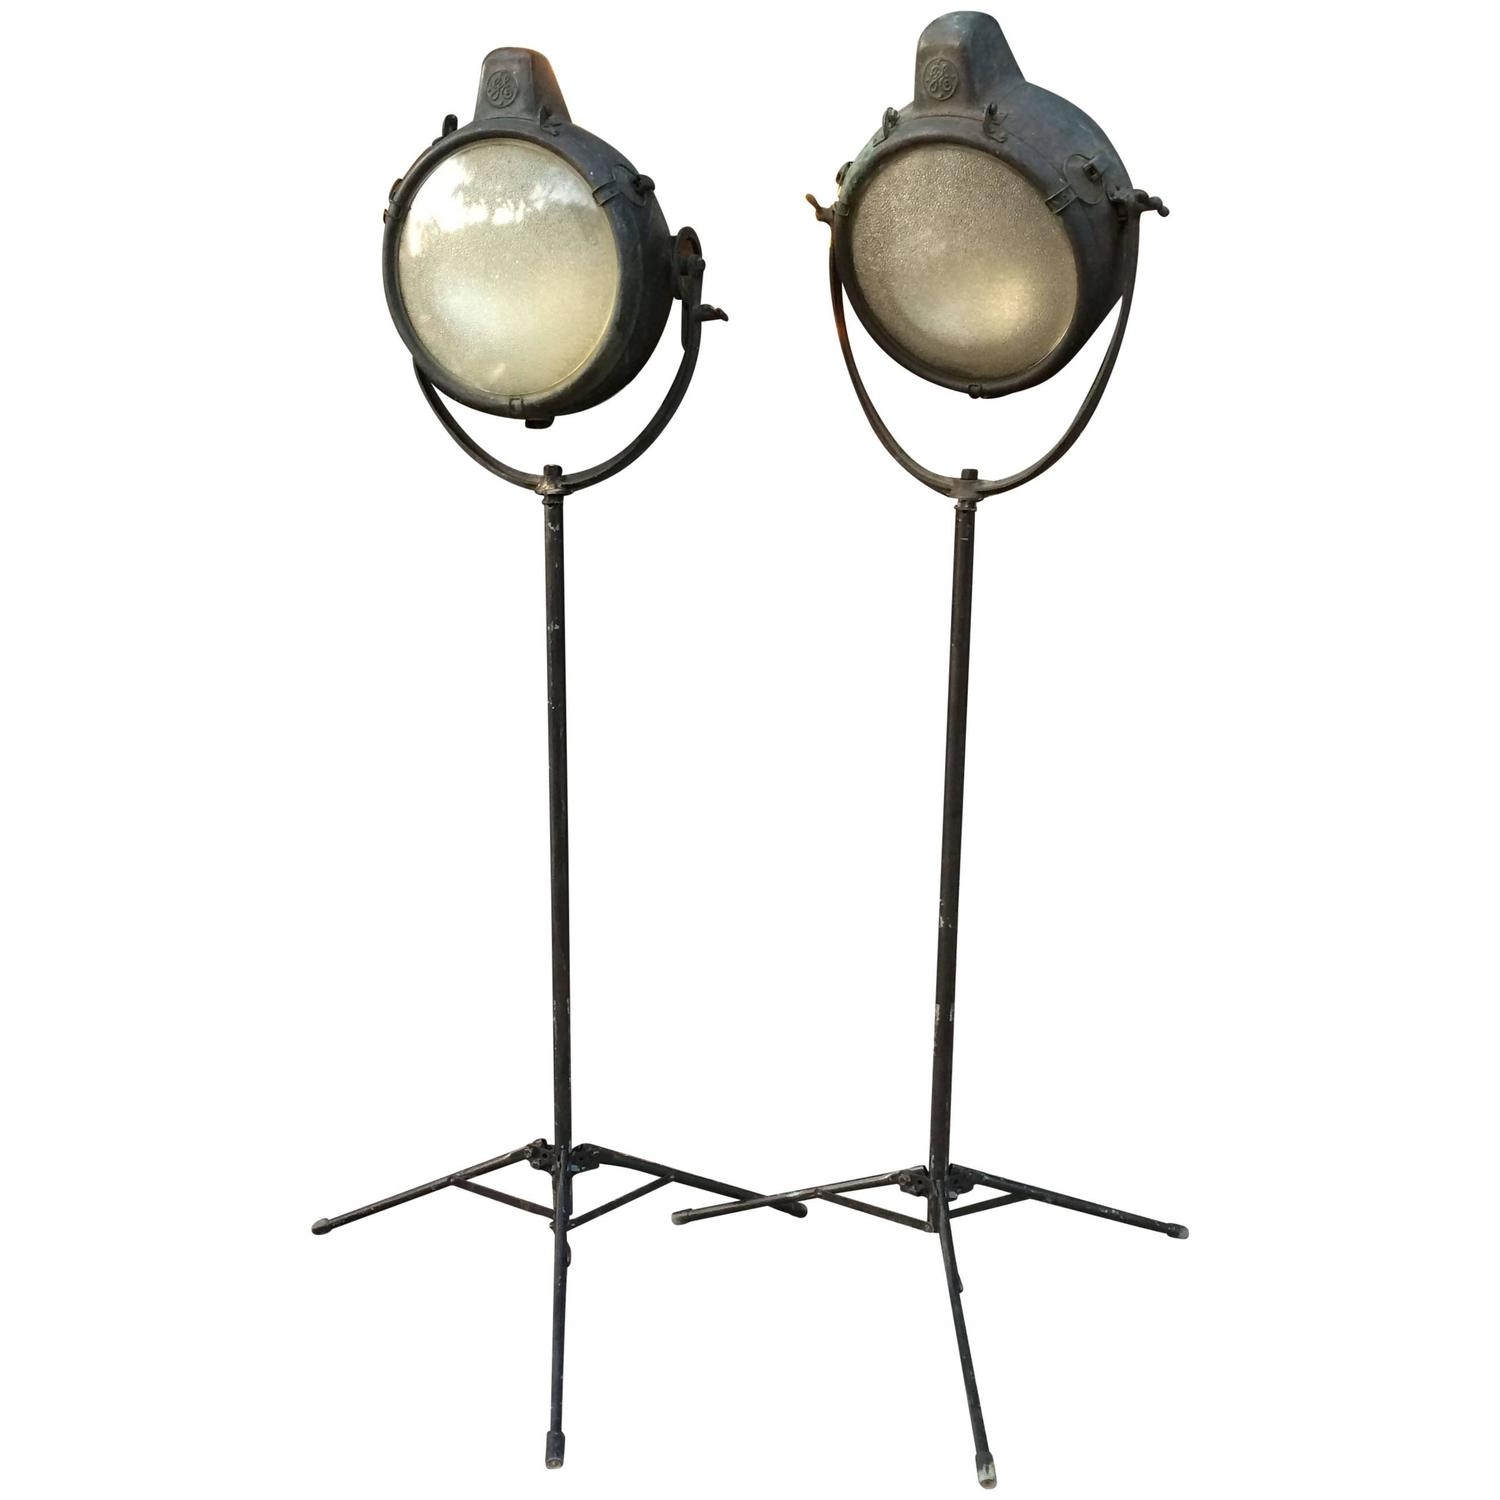 Gorgeous Industrial Ge Copper Search Light Lamp Sale At Industrial Lamps Canada Industrial Lamp Vintage houzz-02 Industrial Floor Lamp